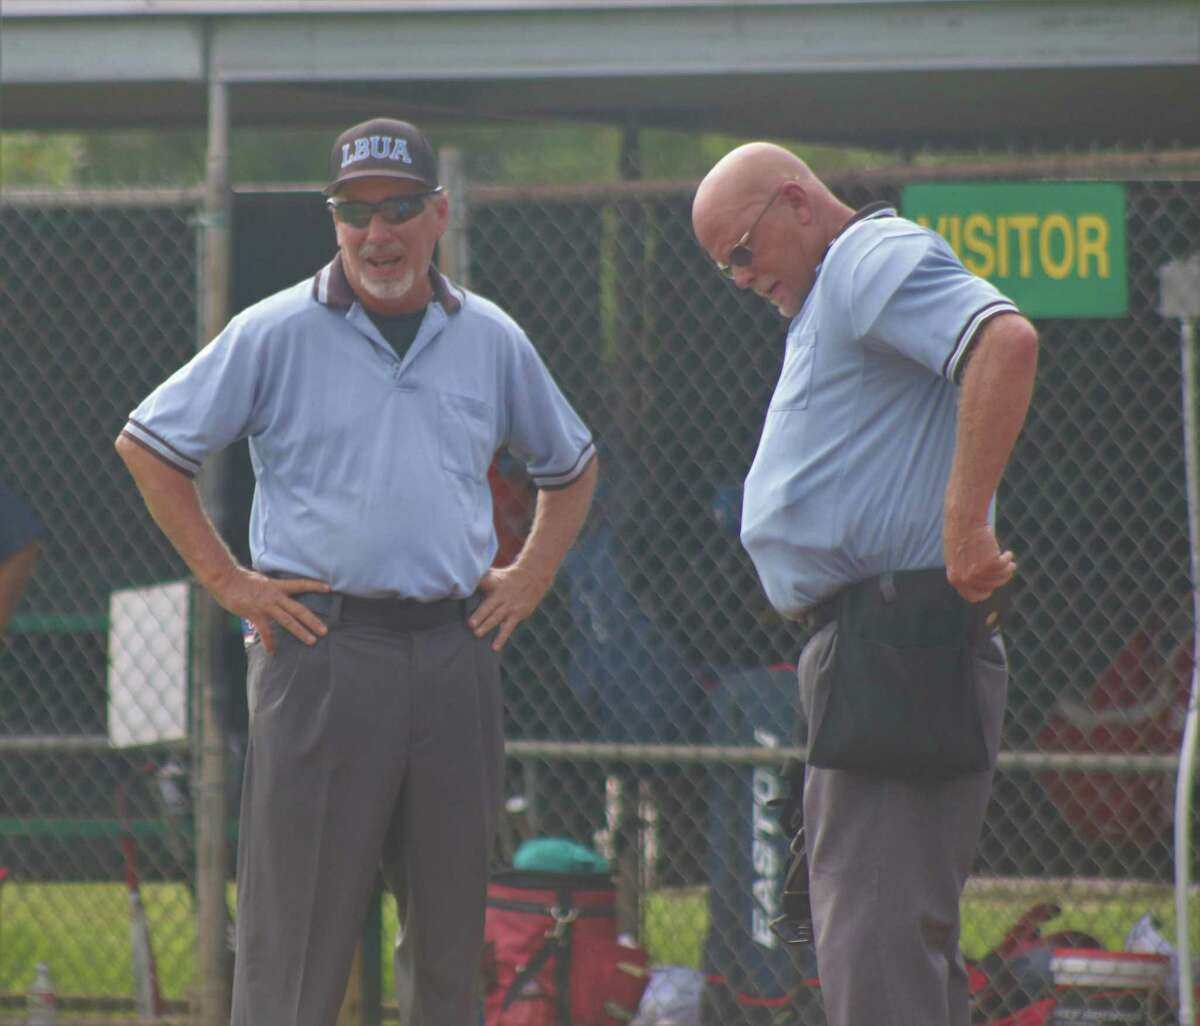 Umpires Tim Mooren (left) and Robert Nolen have one of their discussions between innings at a recent youth game. A common sight at local ballfields, they'll be in Louisiana this weekend for the Mustang (10U) World Series.